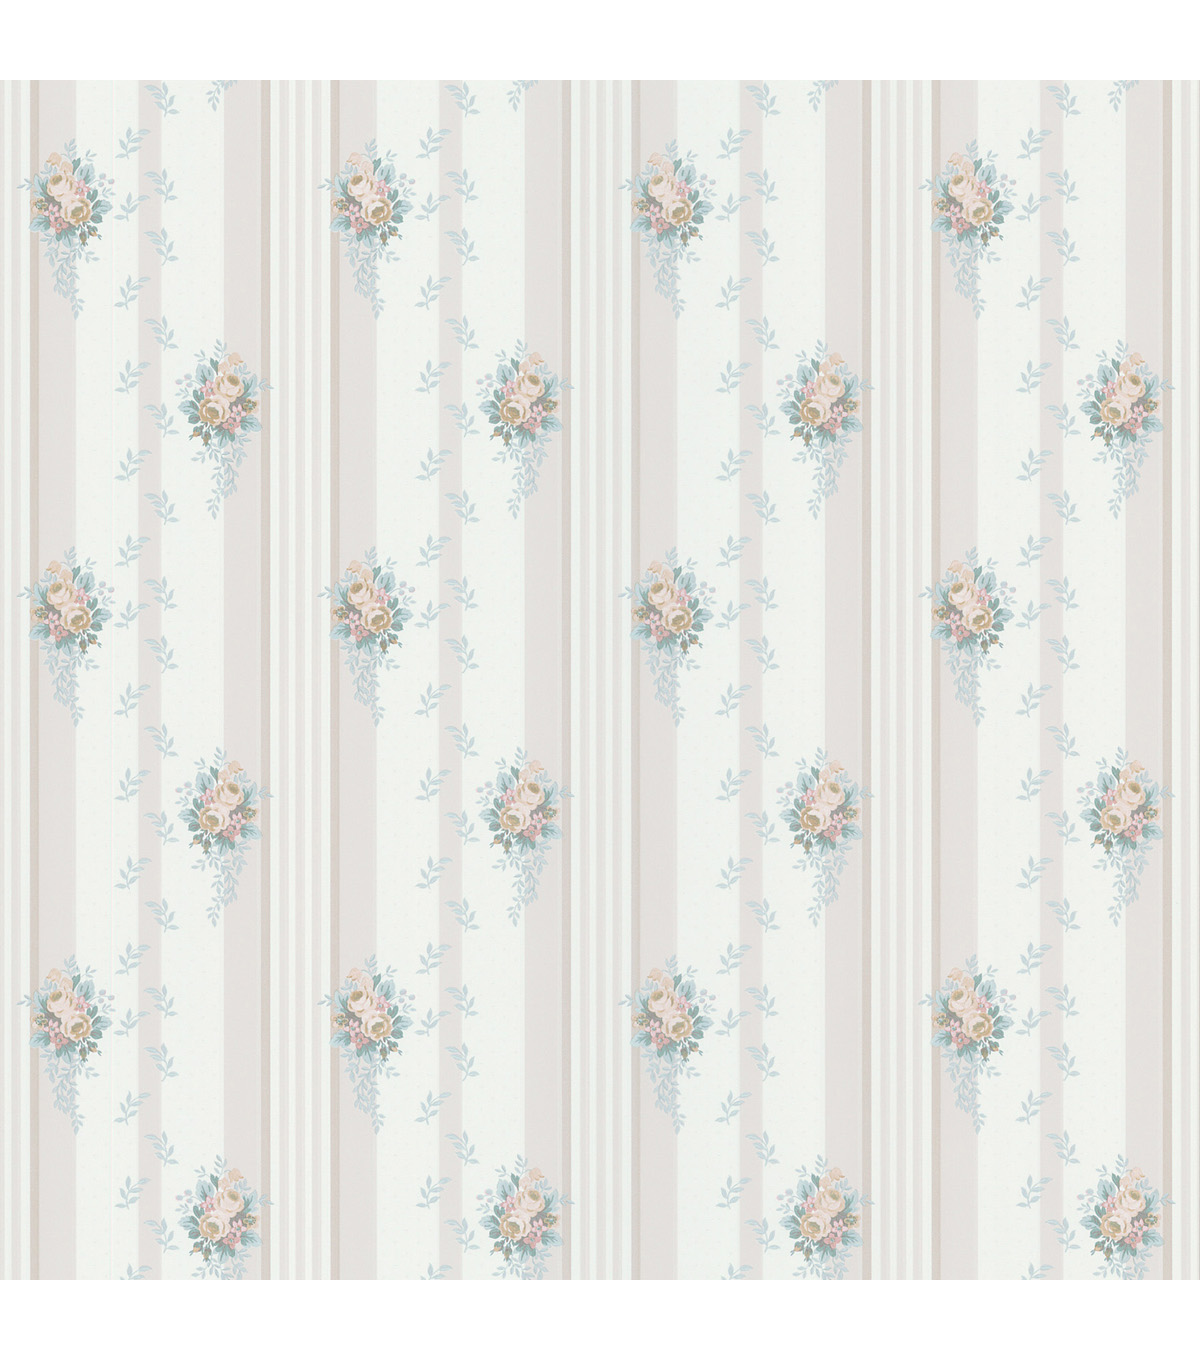 Rose Leaf Print Stripe White Wallpaper SampleRose Leaf Print 1200x1360